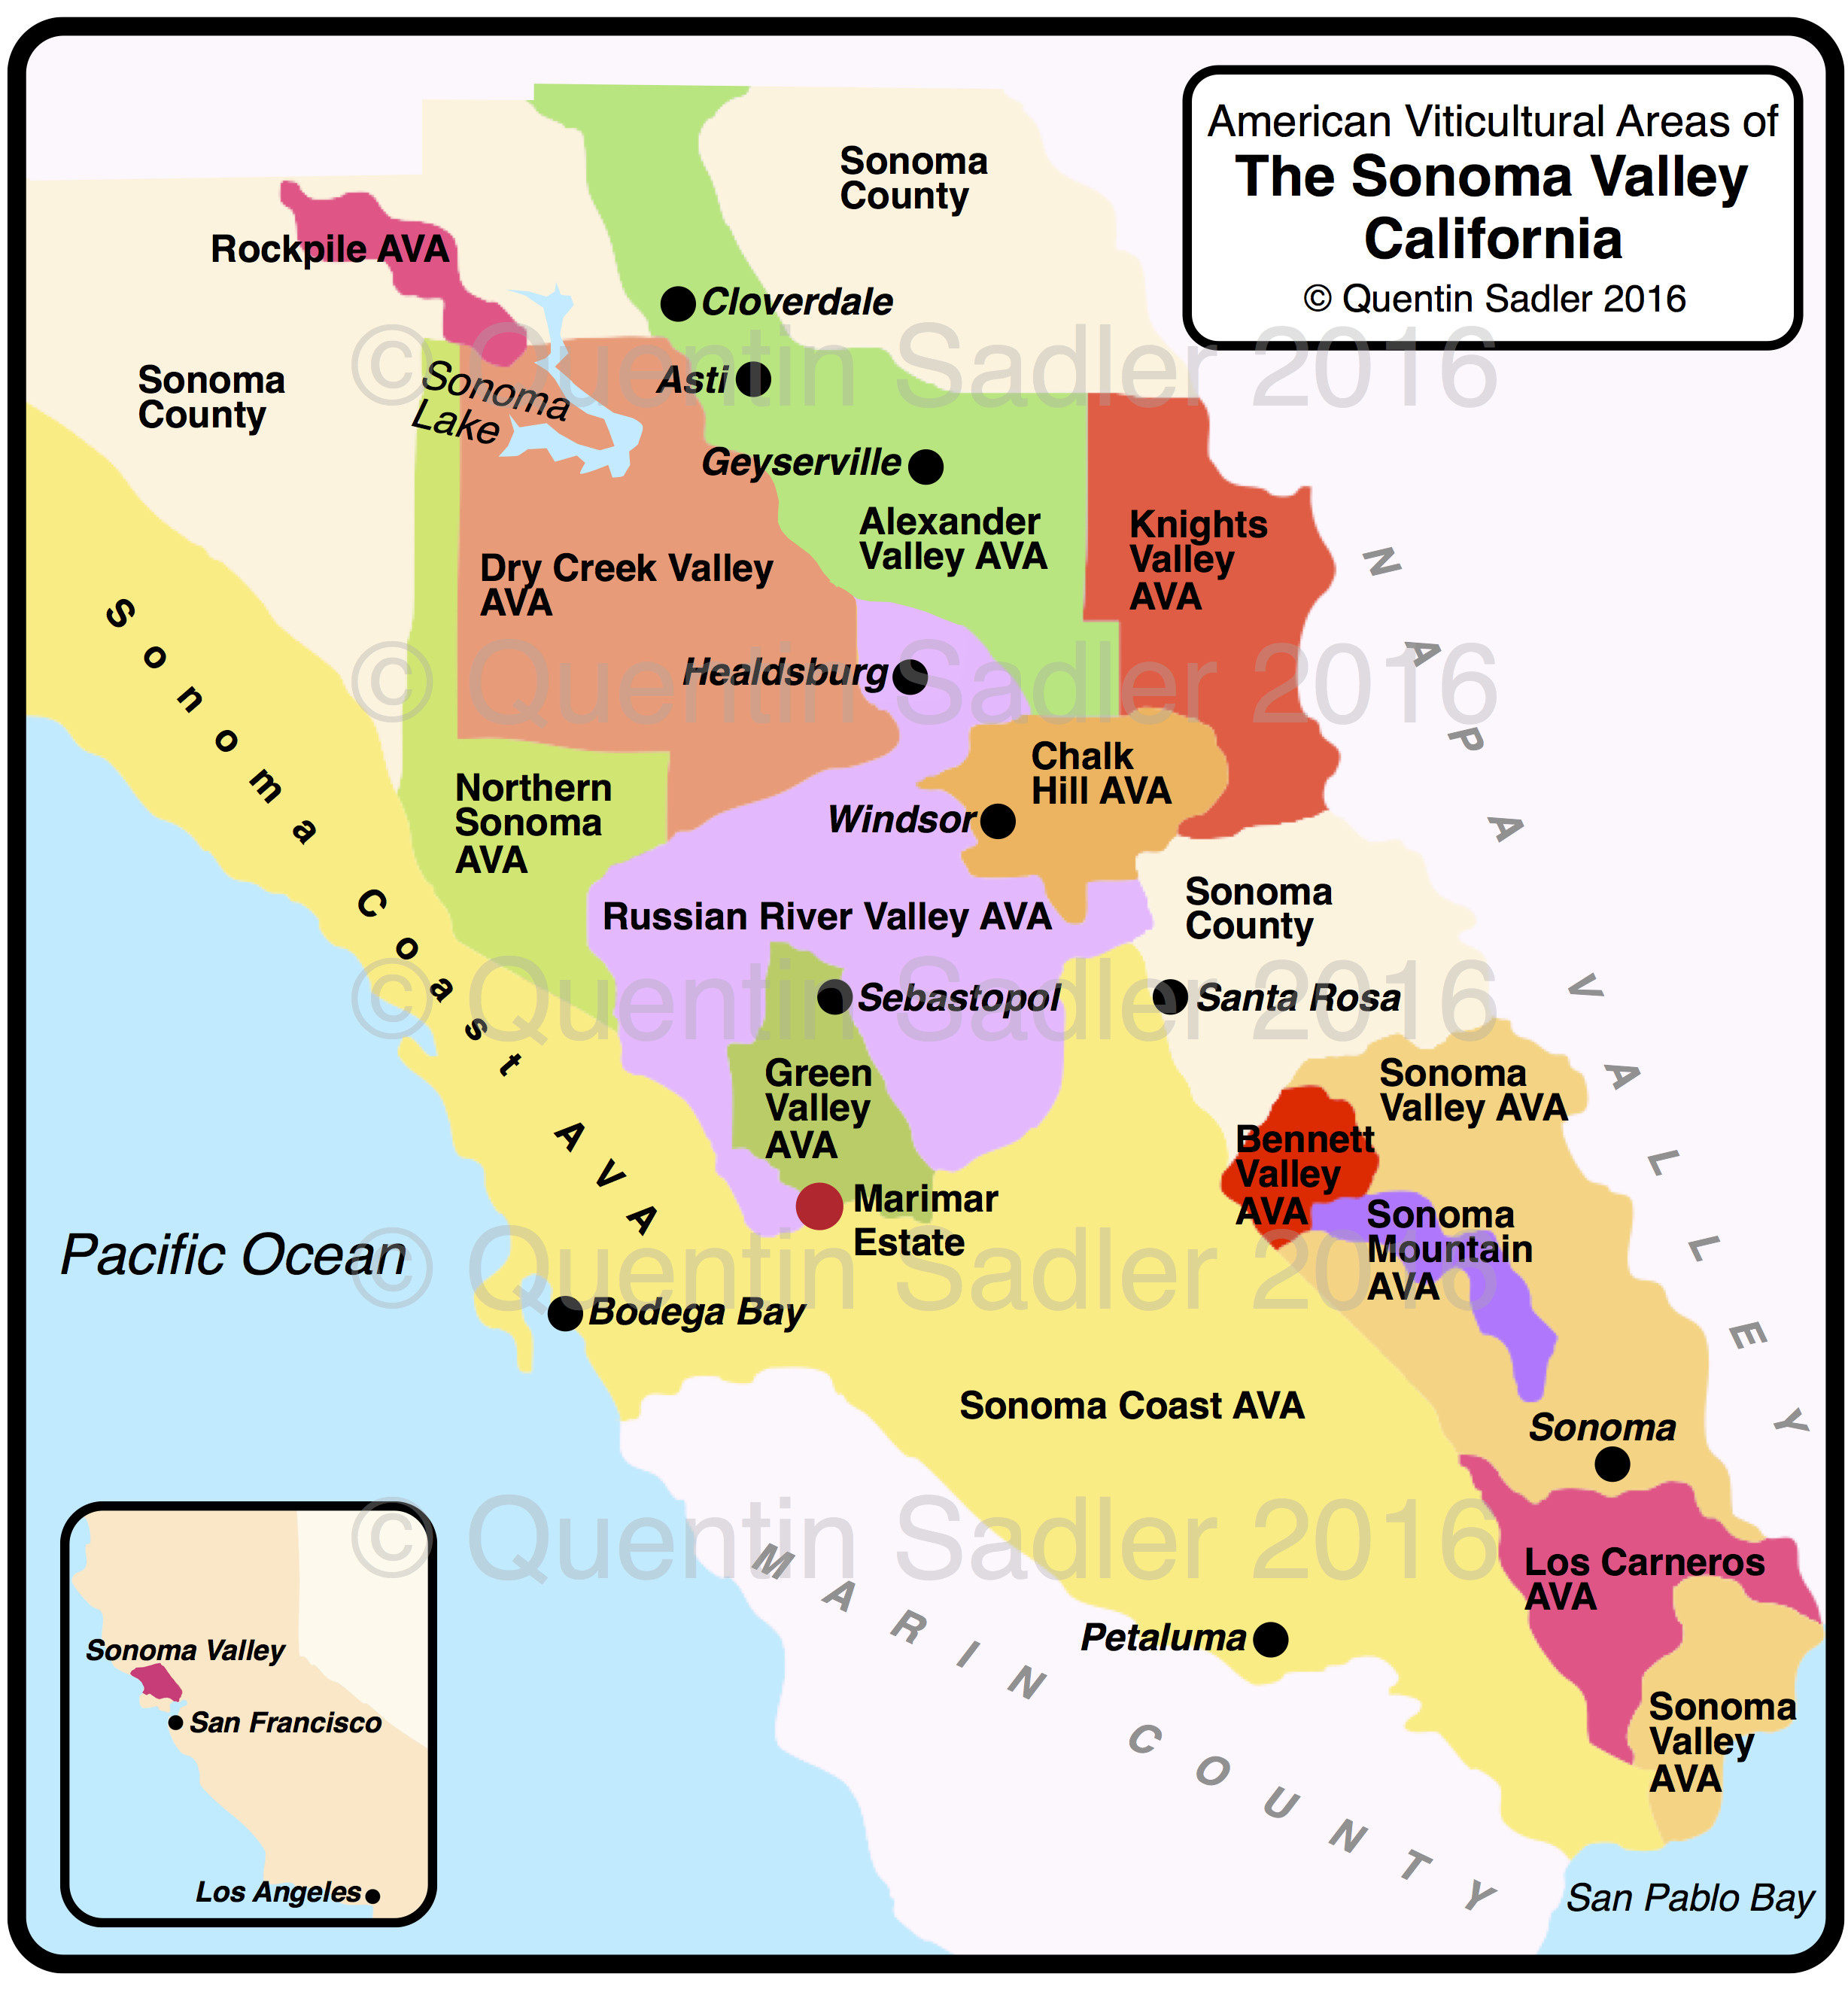 Where Is Paso Robles California On The Map Detailed California - Where Is Paso Robles California On The Map